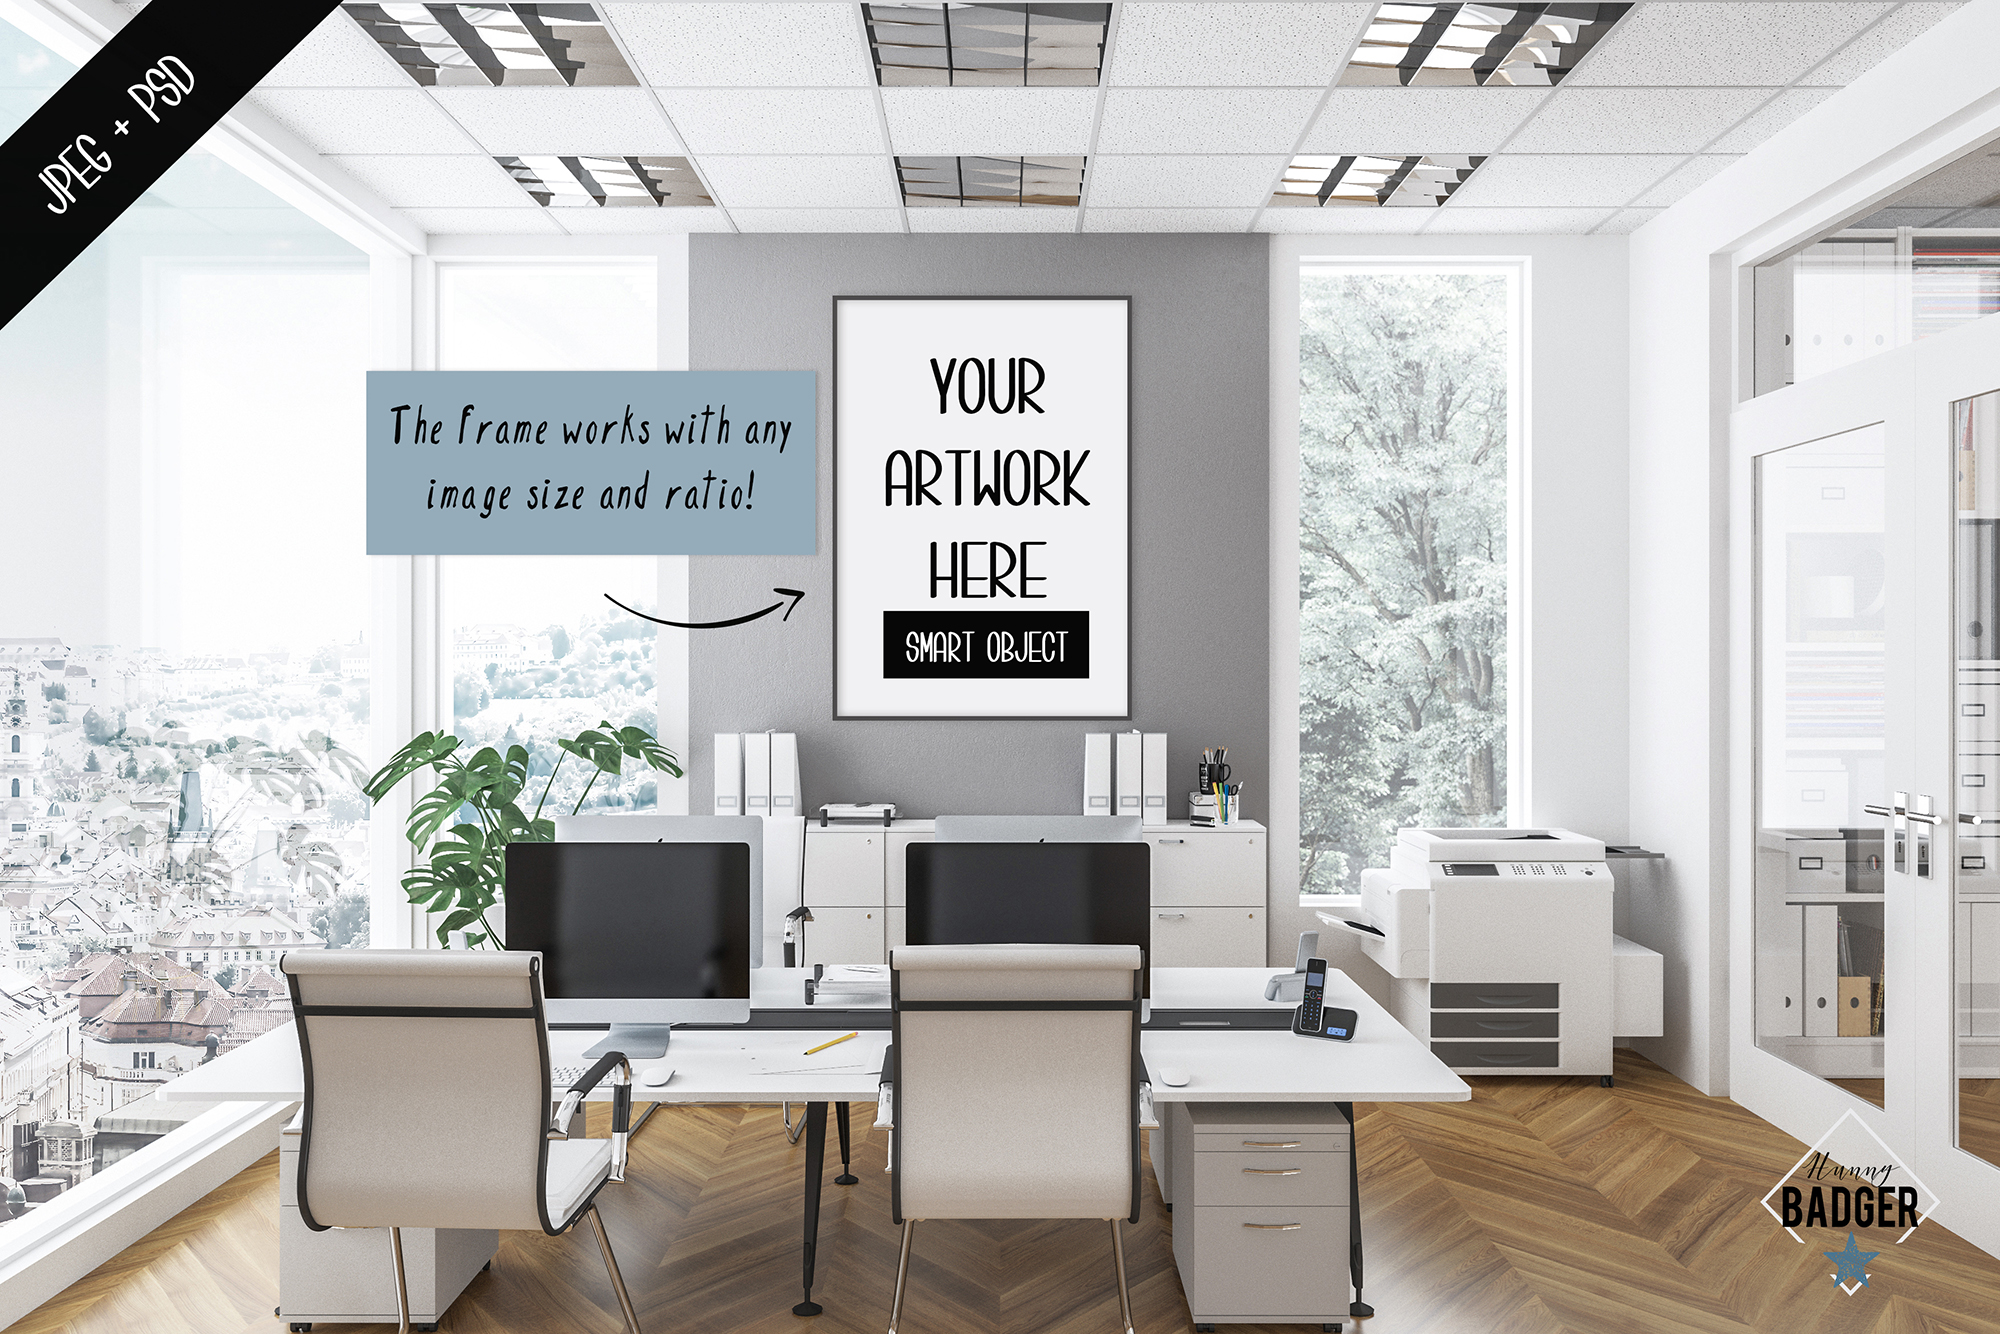 Office interior mockup - frame & wall mockup creator example image 2